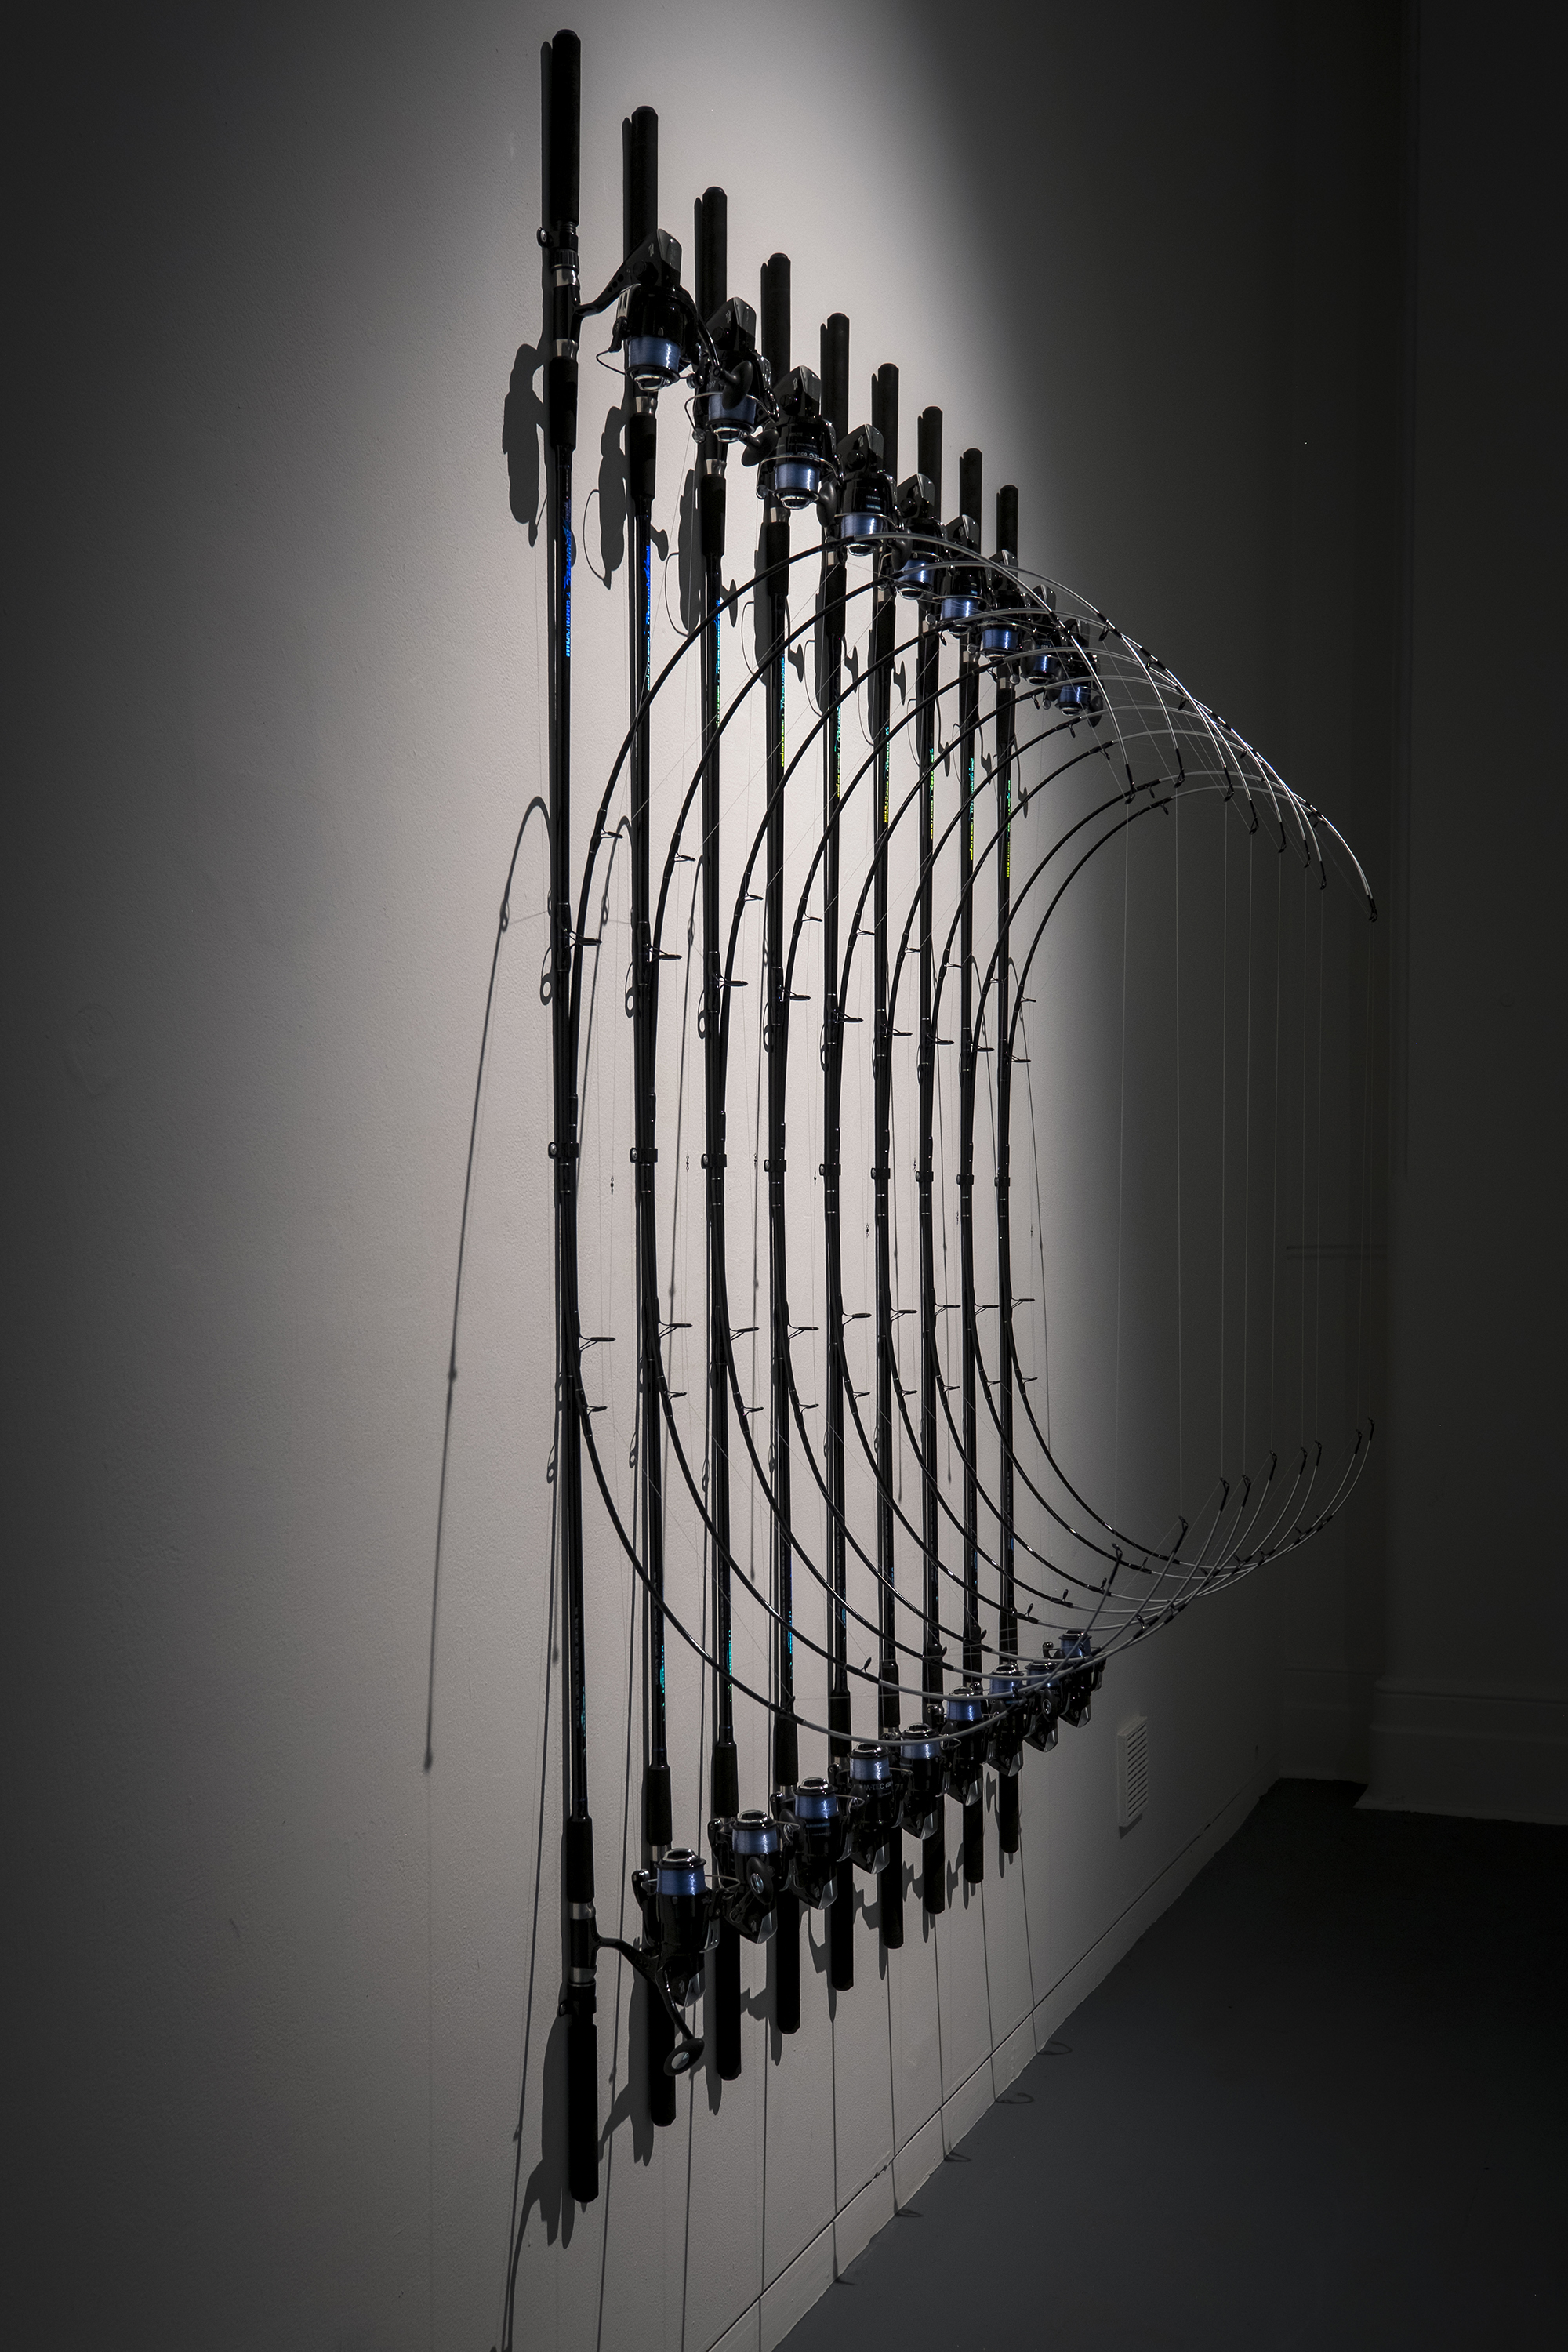 In-tension , 2016, fishing rods and line, 210 x 160 x 80 cm. Exhibited at Hatched: National Graduate Show 2017, Perth Institute of Contemporary Arts.Image: Alessandro Bianchetti.